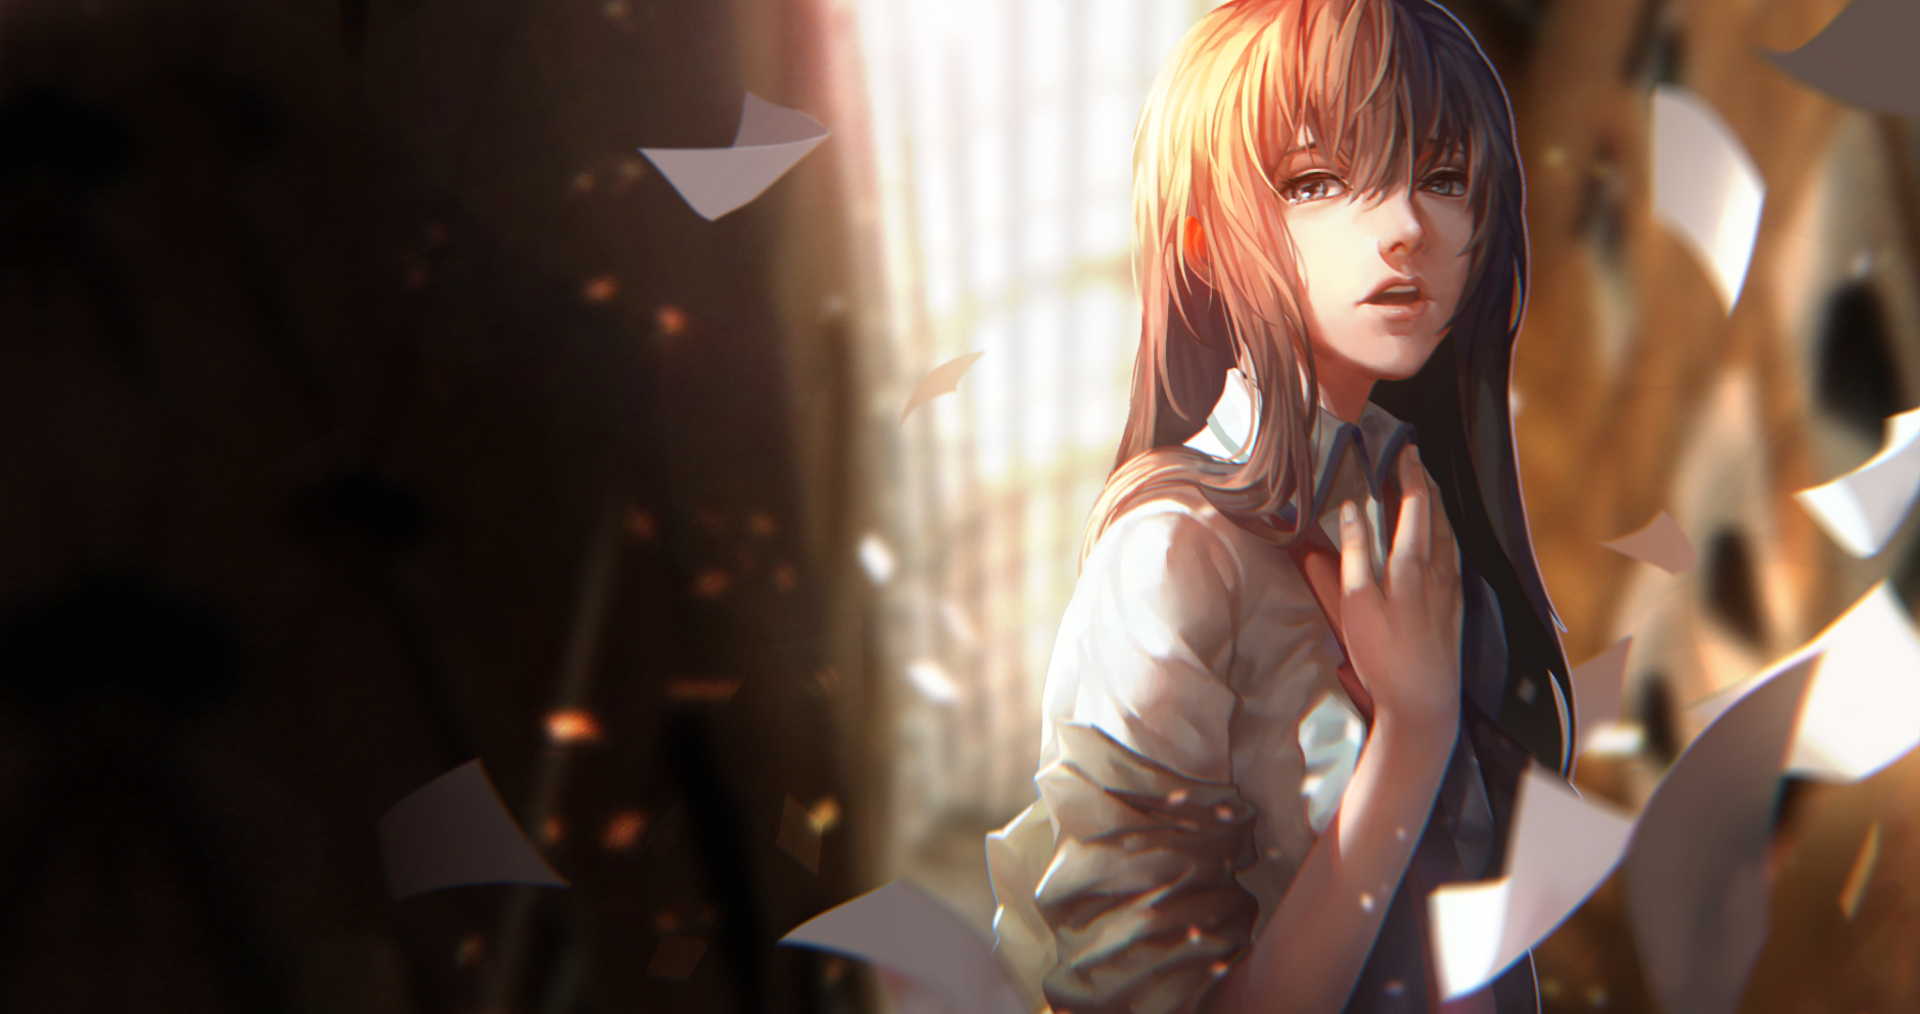 541 Steins Gate Hd Wallpapers Background Images Wallpaper Abyss